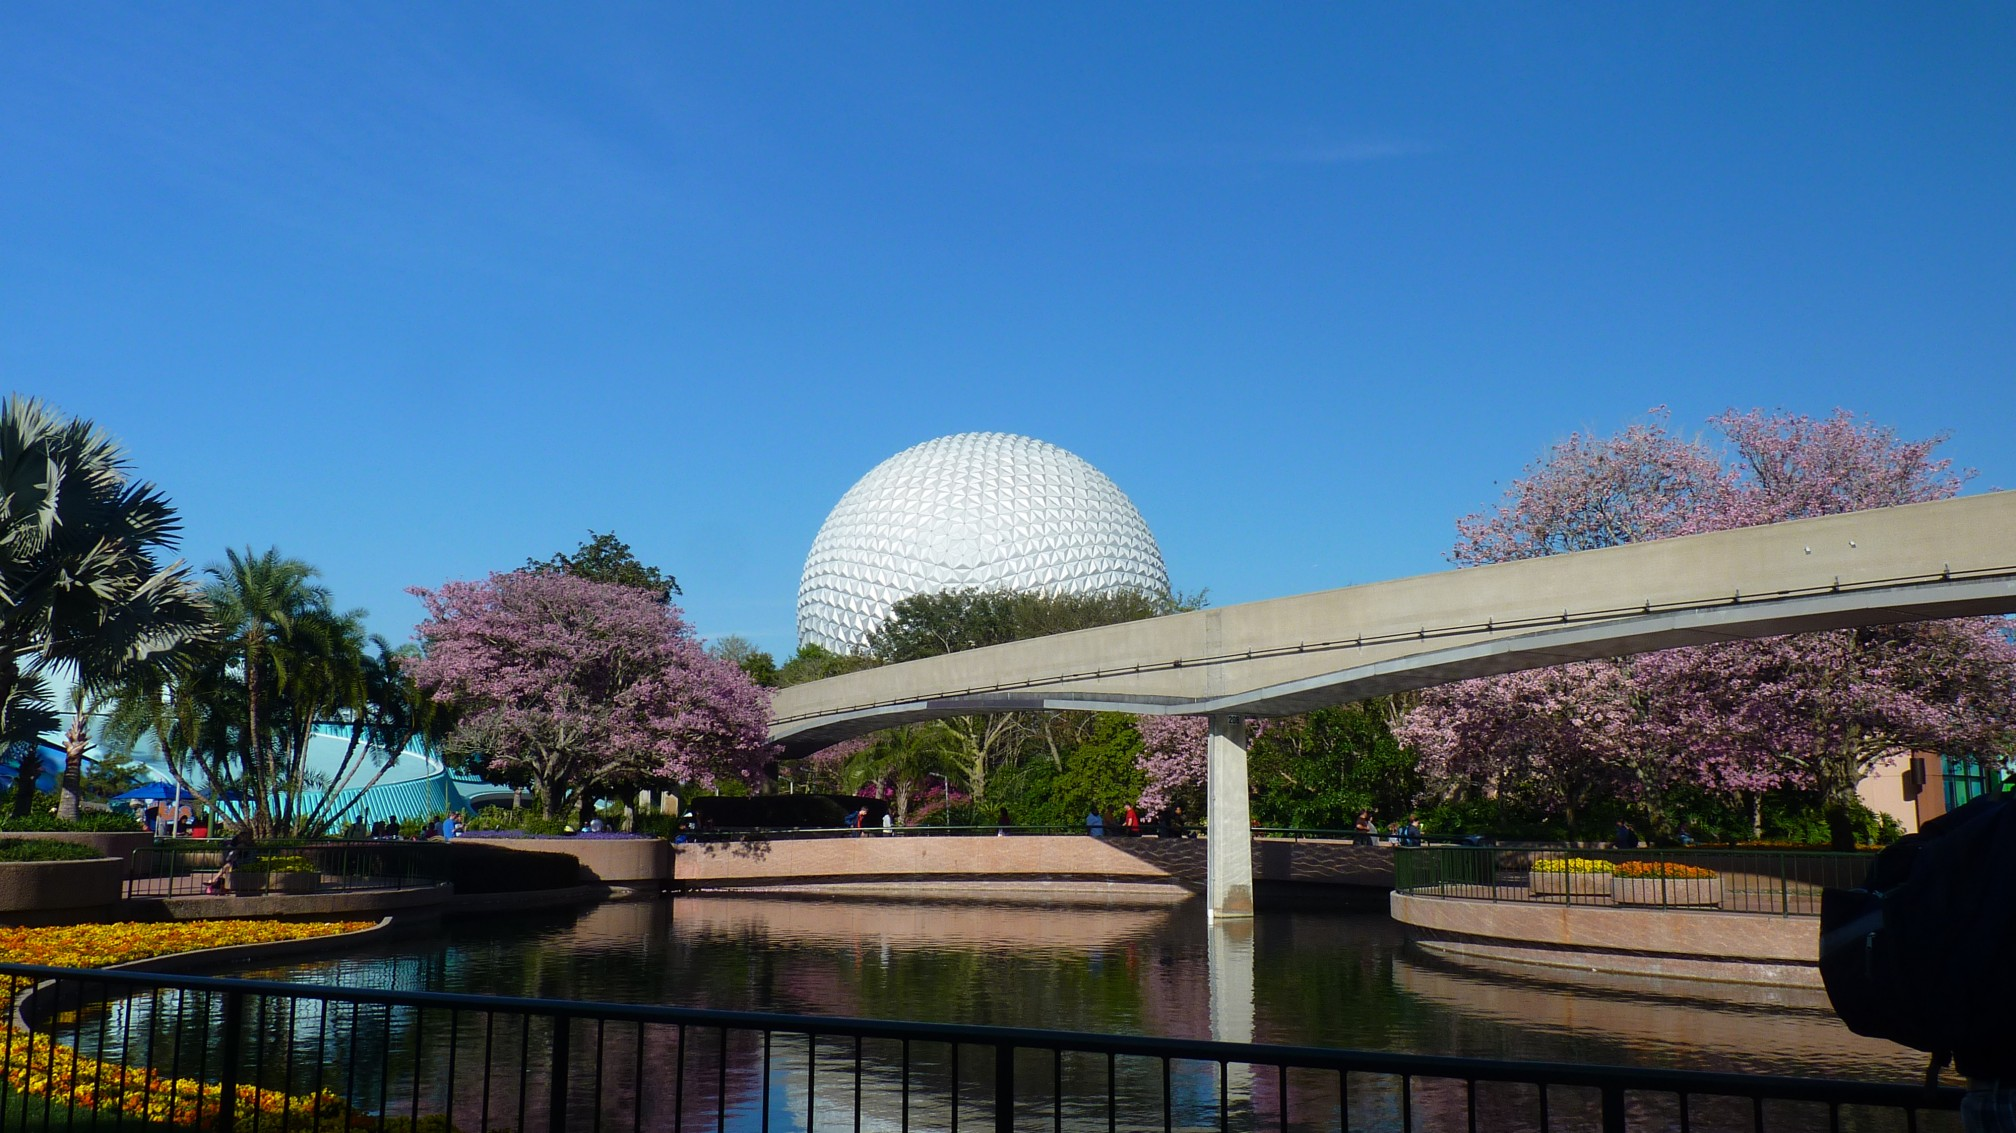 Jud's Disney Picture of the Day: BIG BALL VIOLET